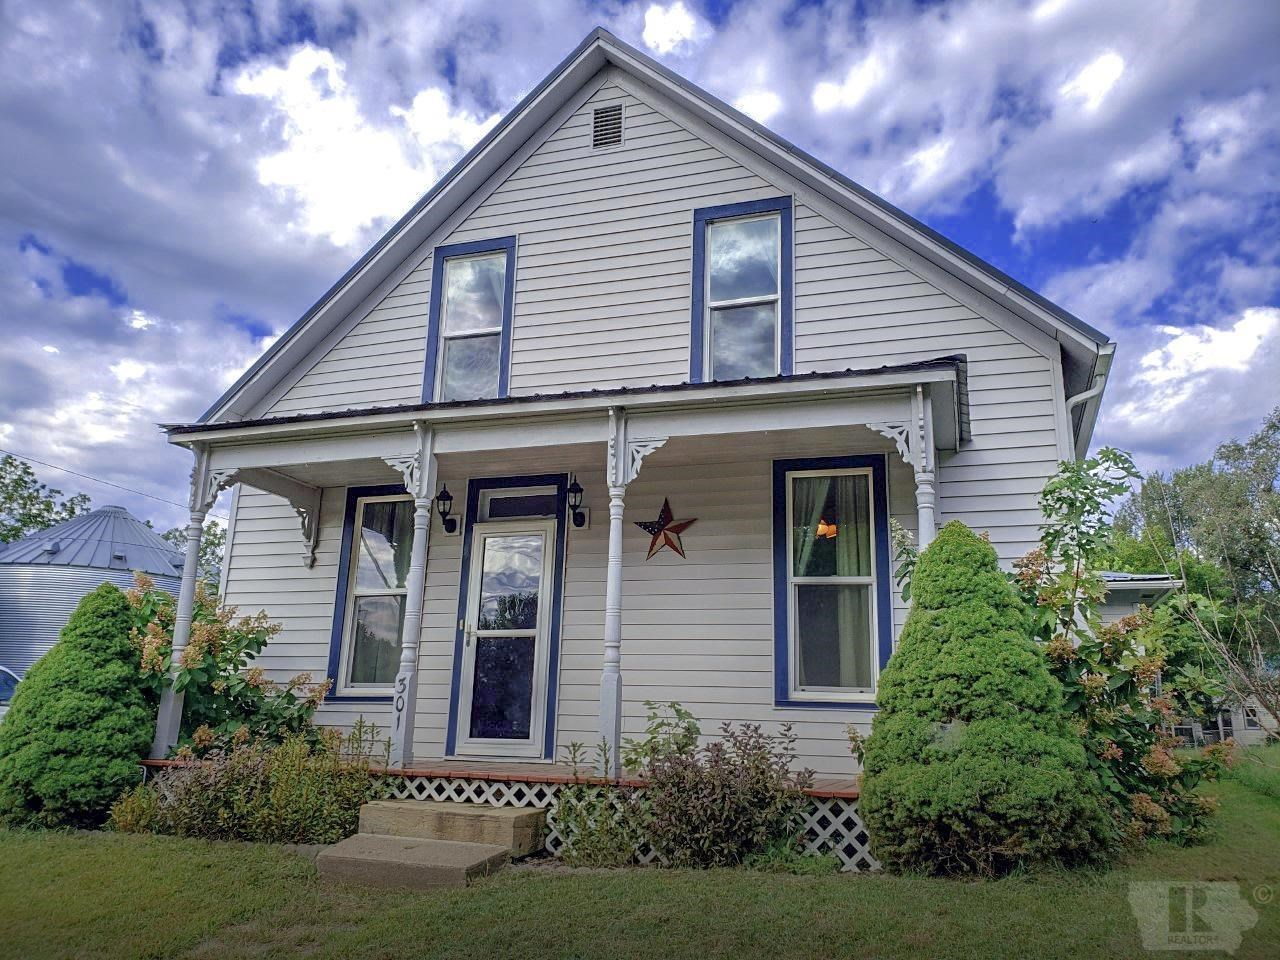 4-Bed, 1-Bath Home in Bonaparte, Iowa